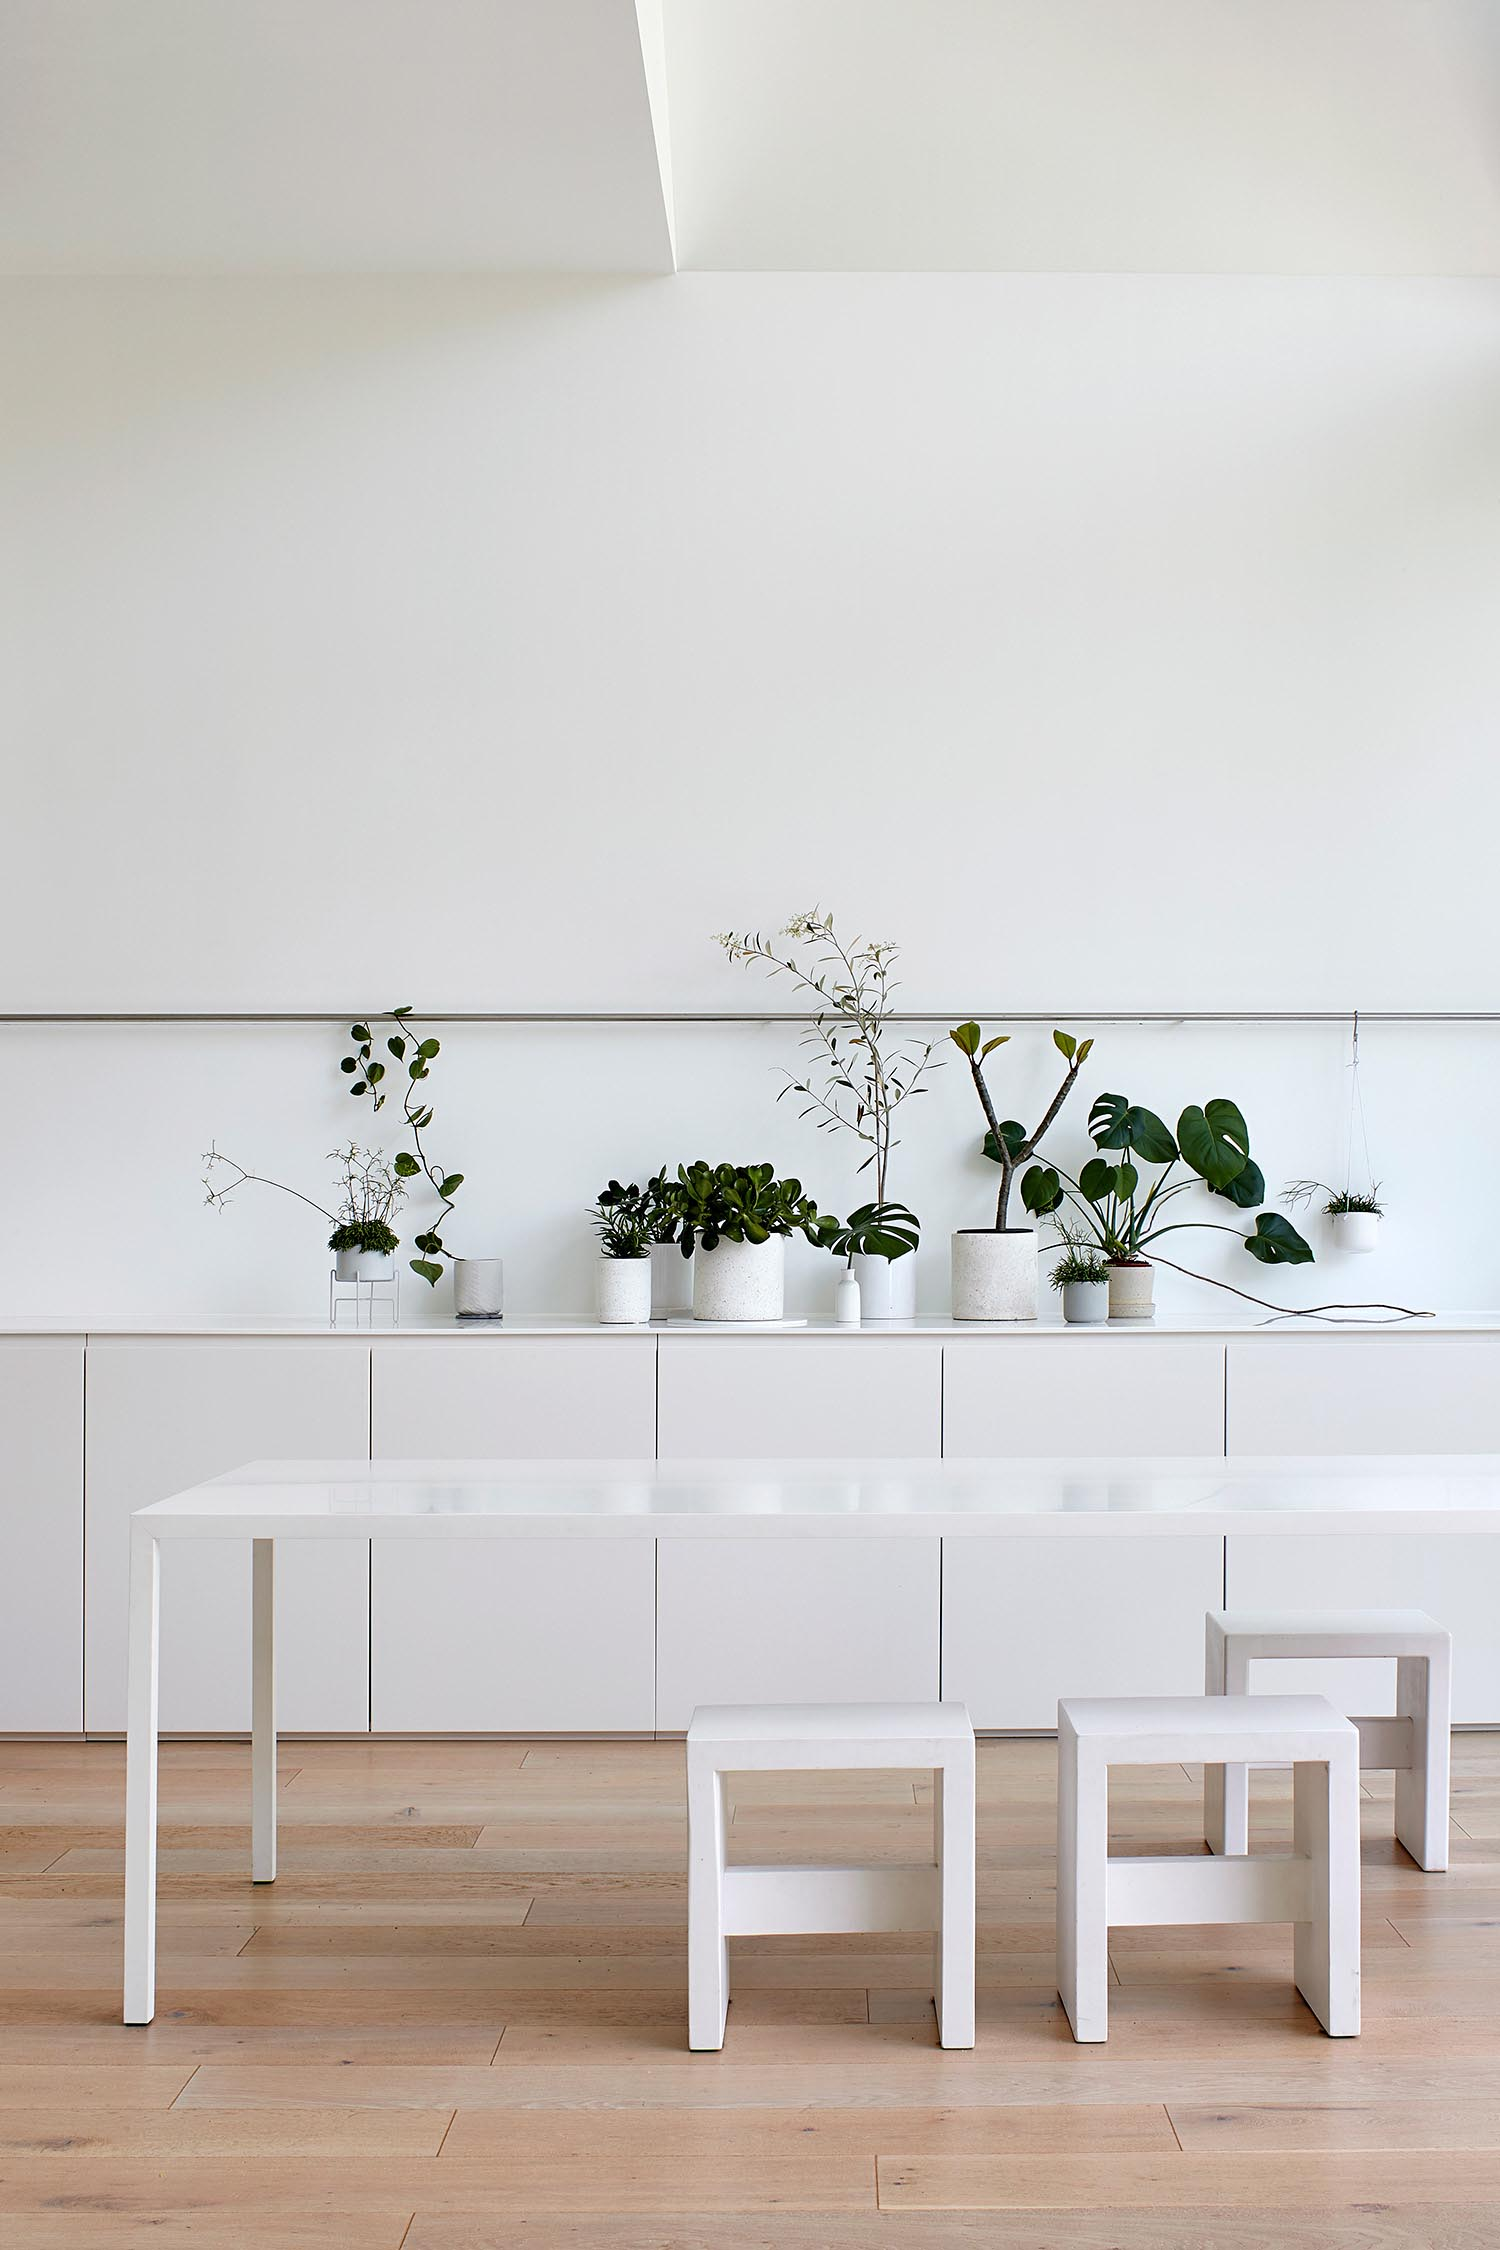 A modern dining room with minimalist white furniture and potted plants for decoration.